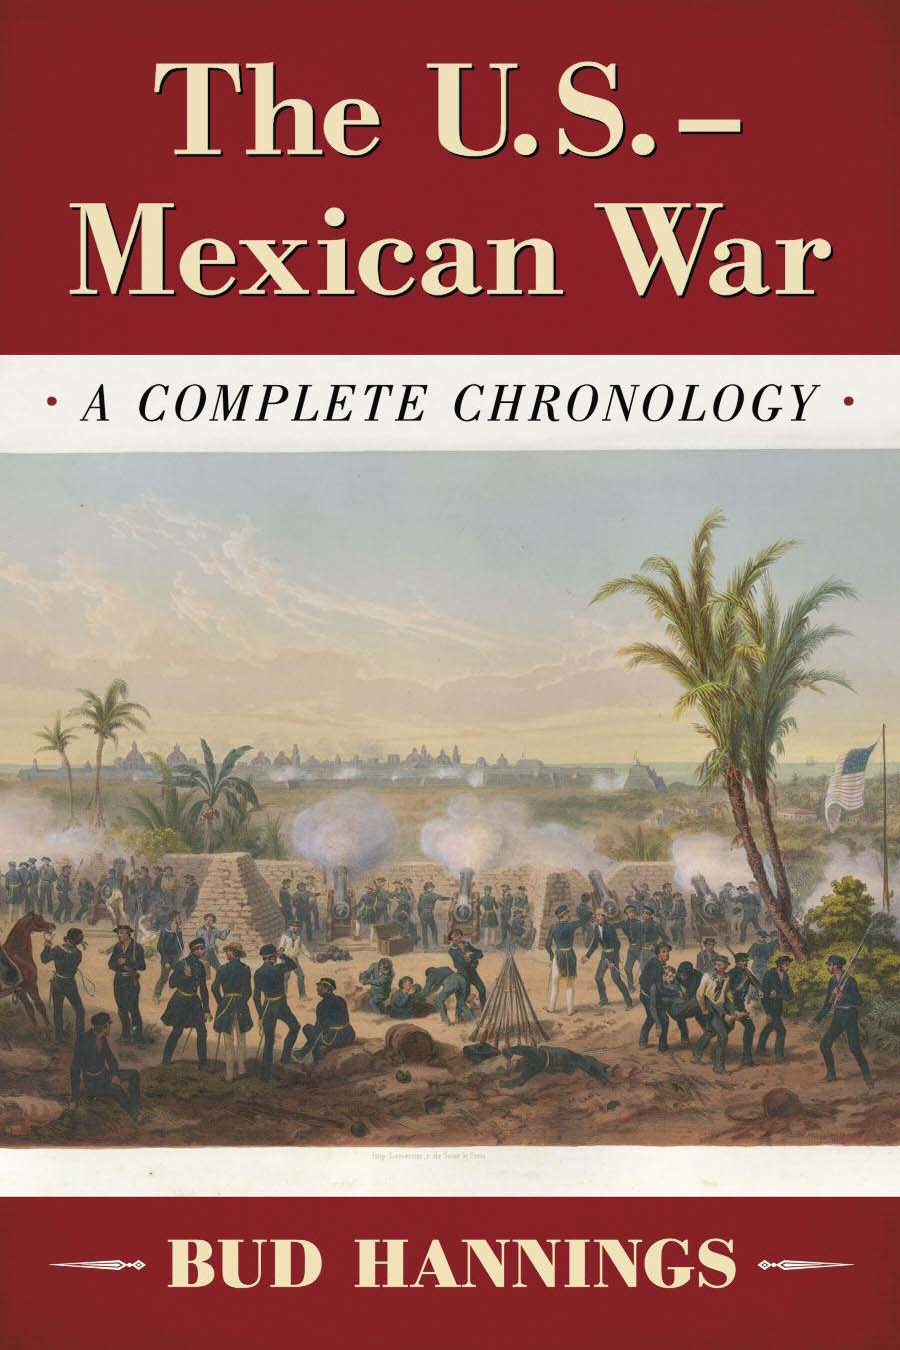 Mexican war cover.jpg